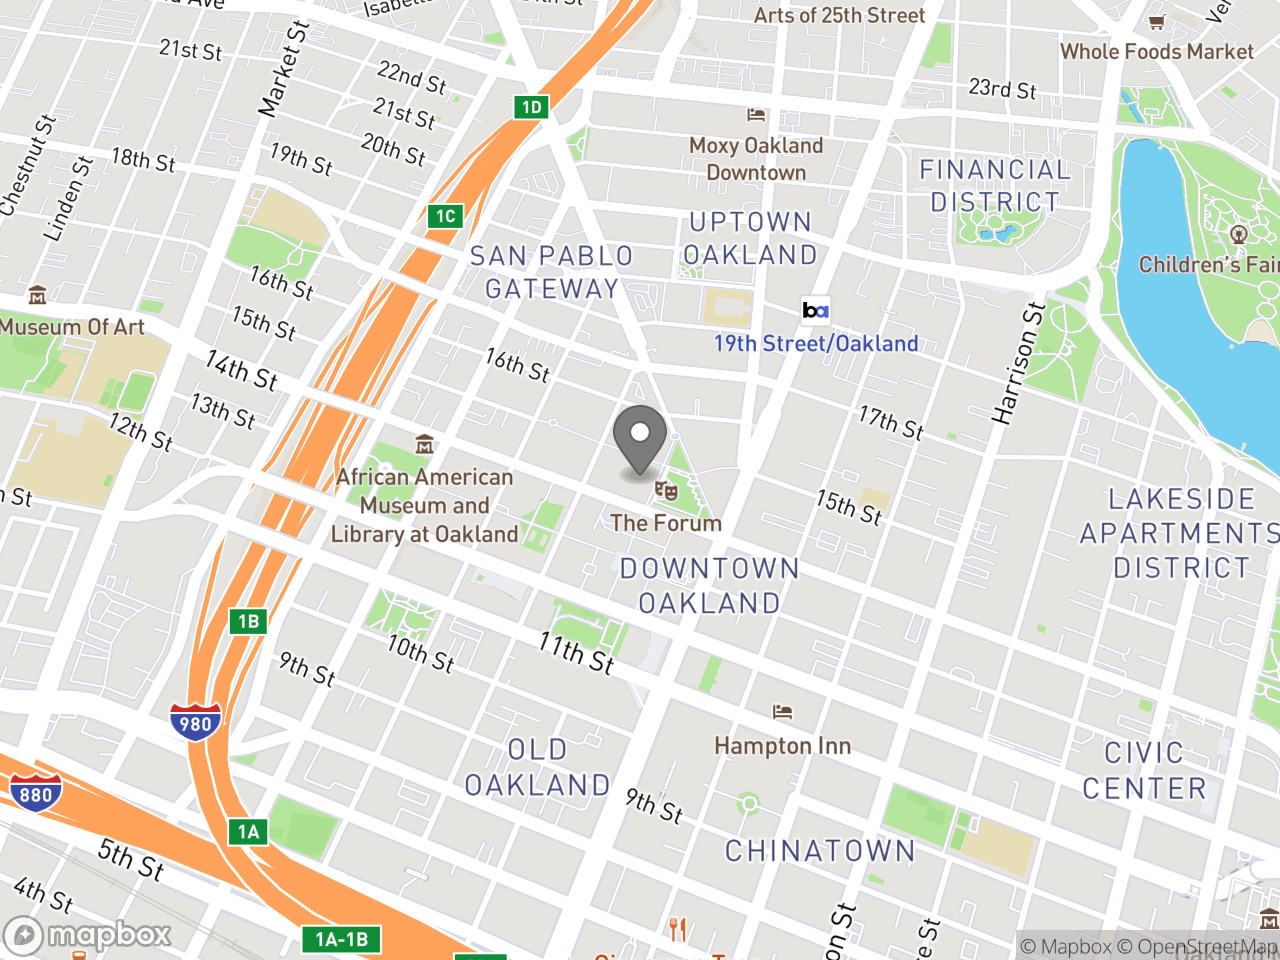 Map location for Police and Fire Retirement Board Meeting, February 28, 2018, located at 1 Frank H Ogawa Plaza in Oakland, CA 94612